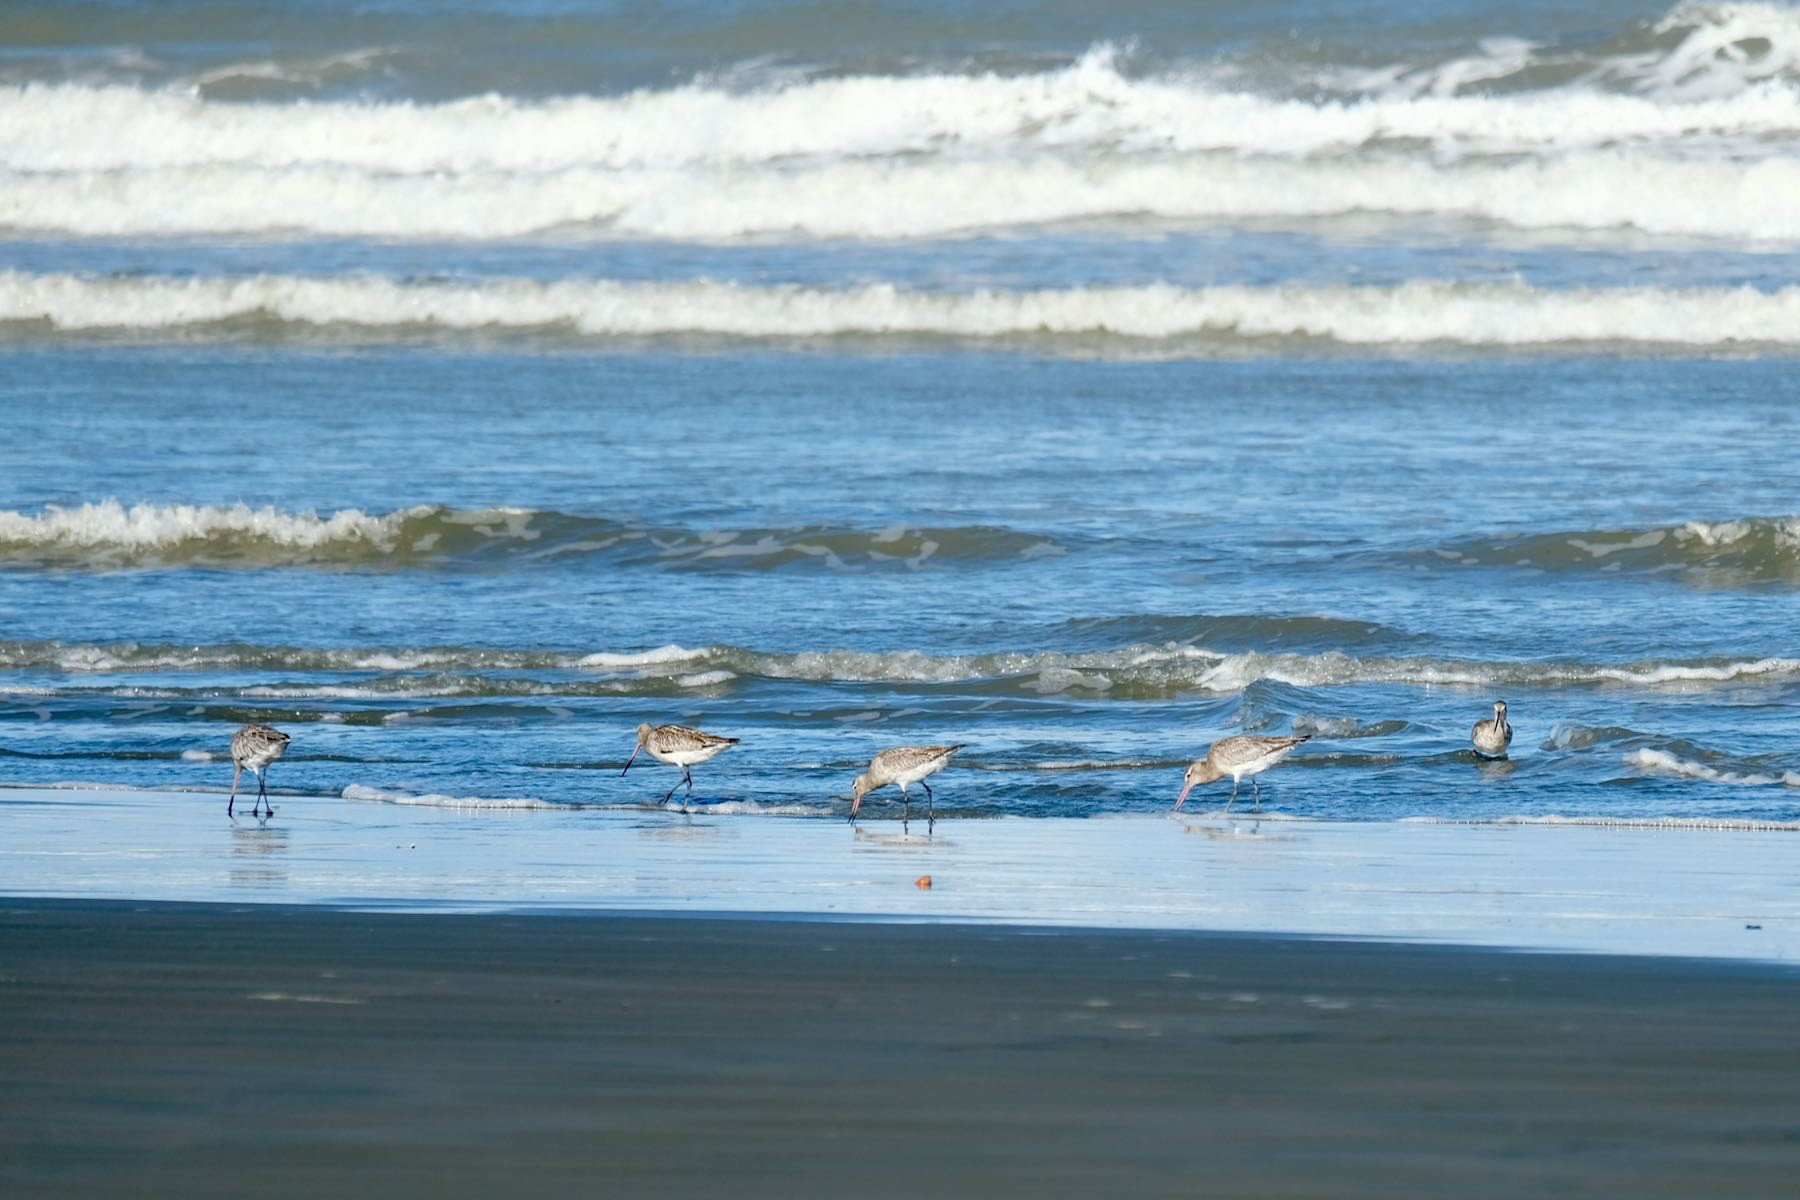 5 godwits at the edge of the sea, with water lapping round their legs.